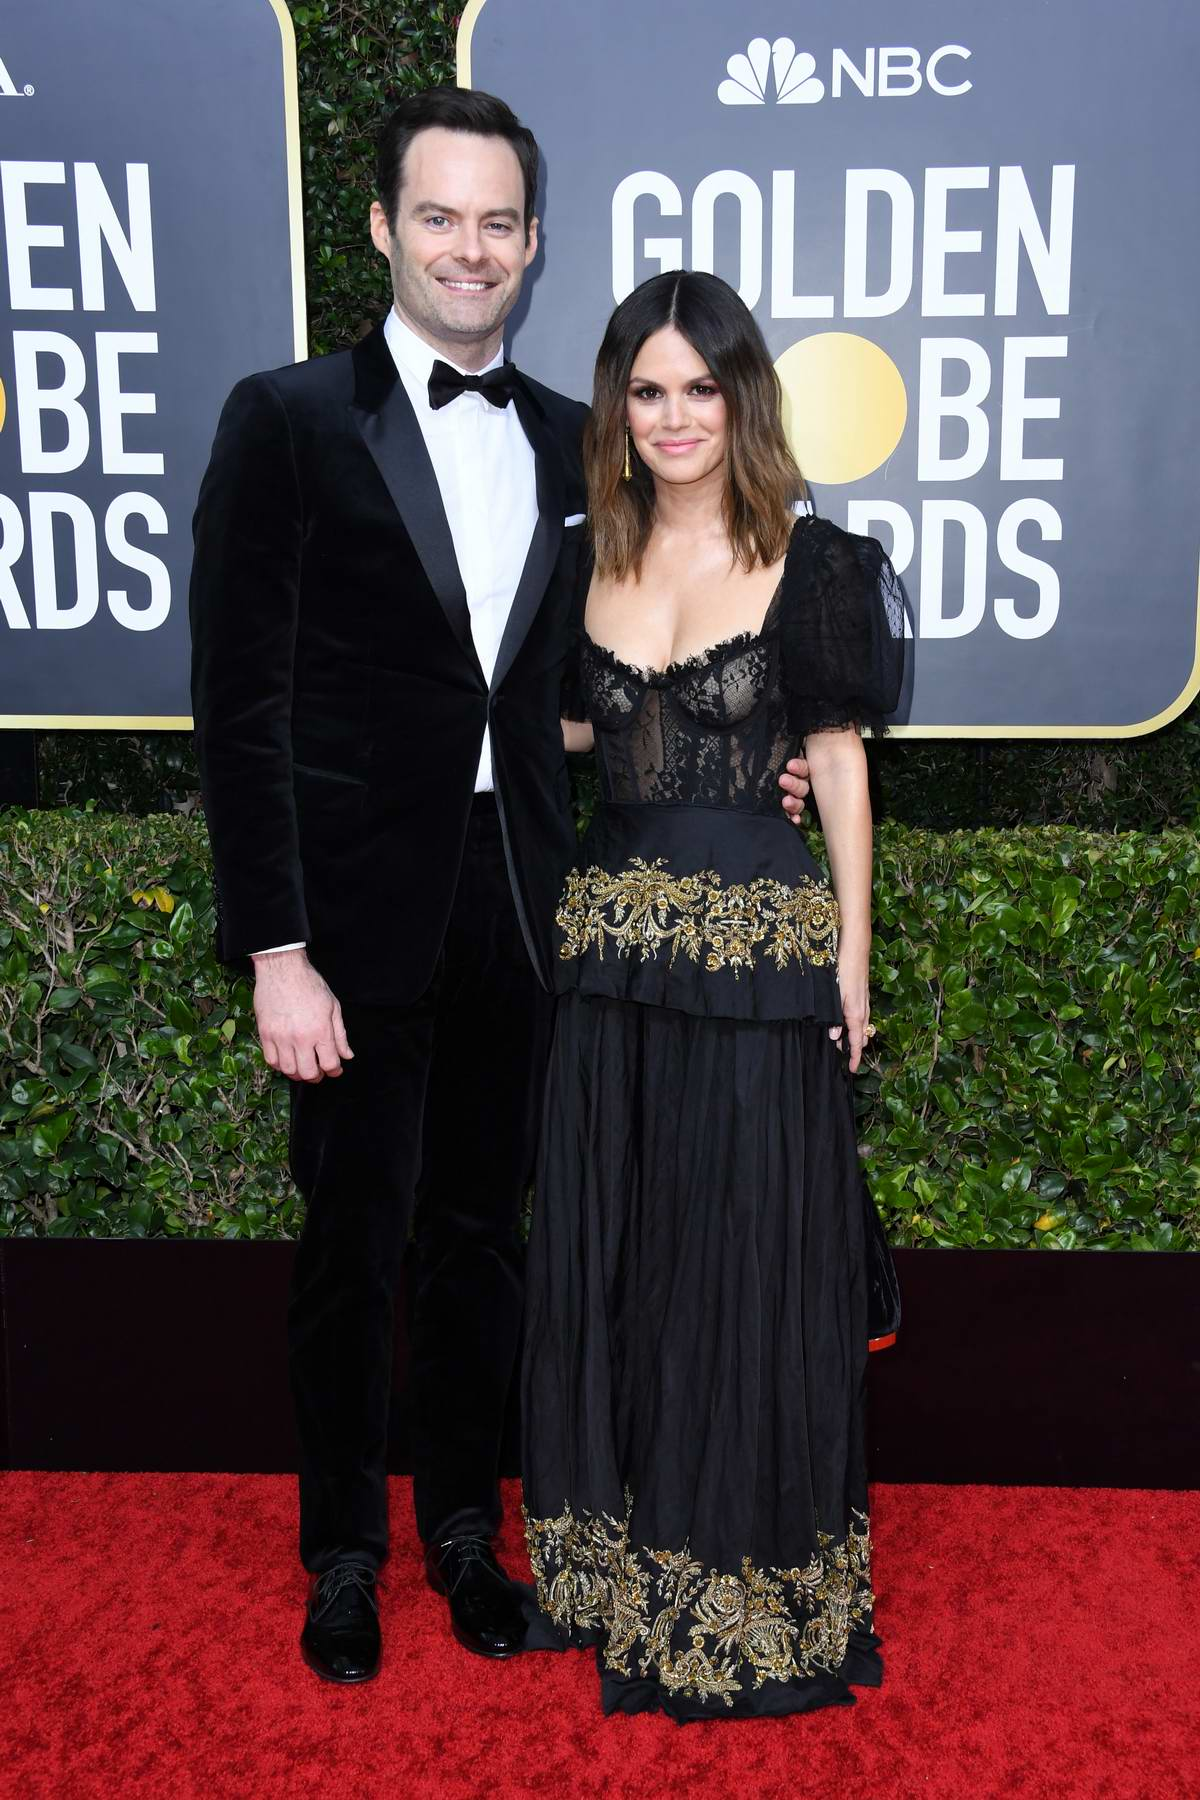 Rachel Bilson and Bill Hader attend the 77th Annual Golden Globe Awards at The Beverly Hilton Hotel in Beverly Hills, California